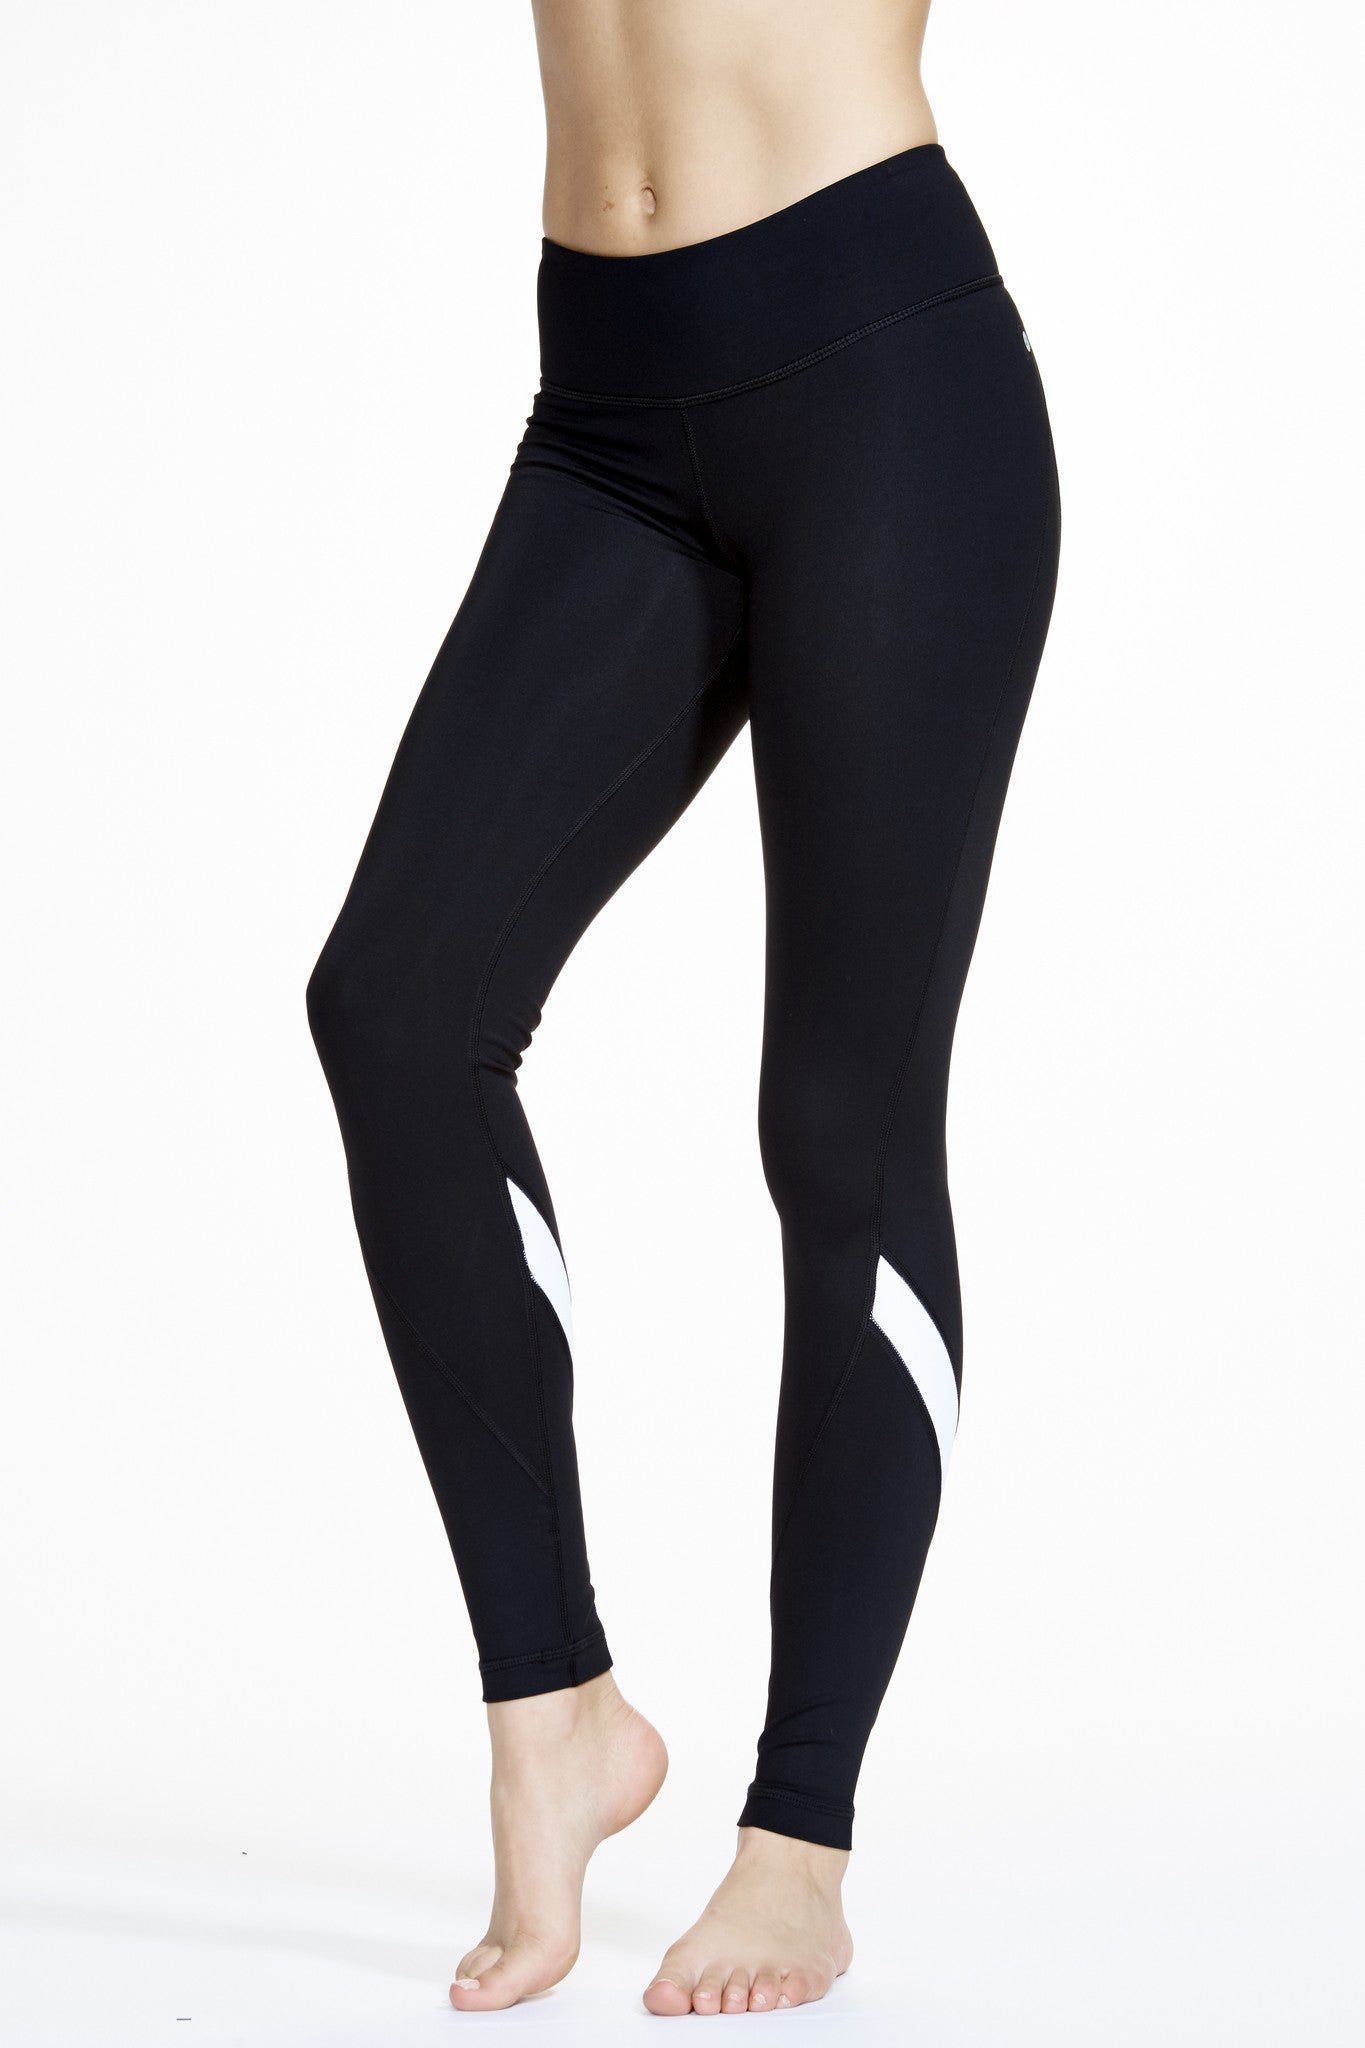 Vee Long Legging in Black and White - AMAIA - 2